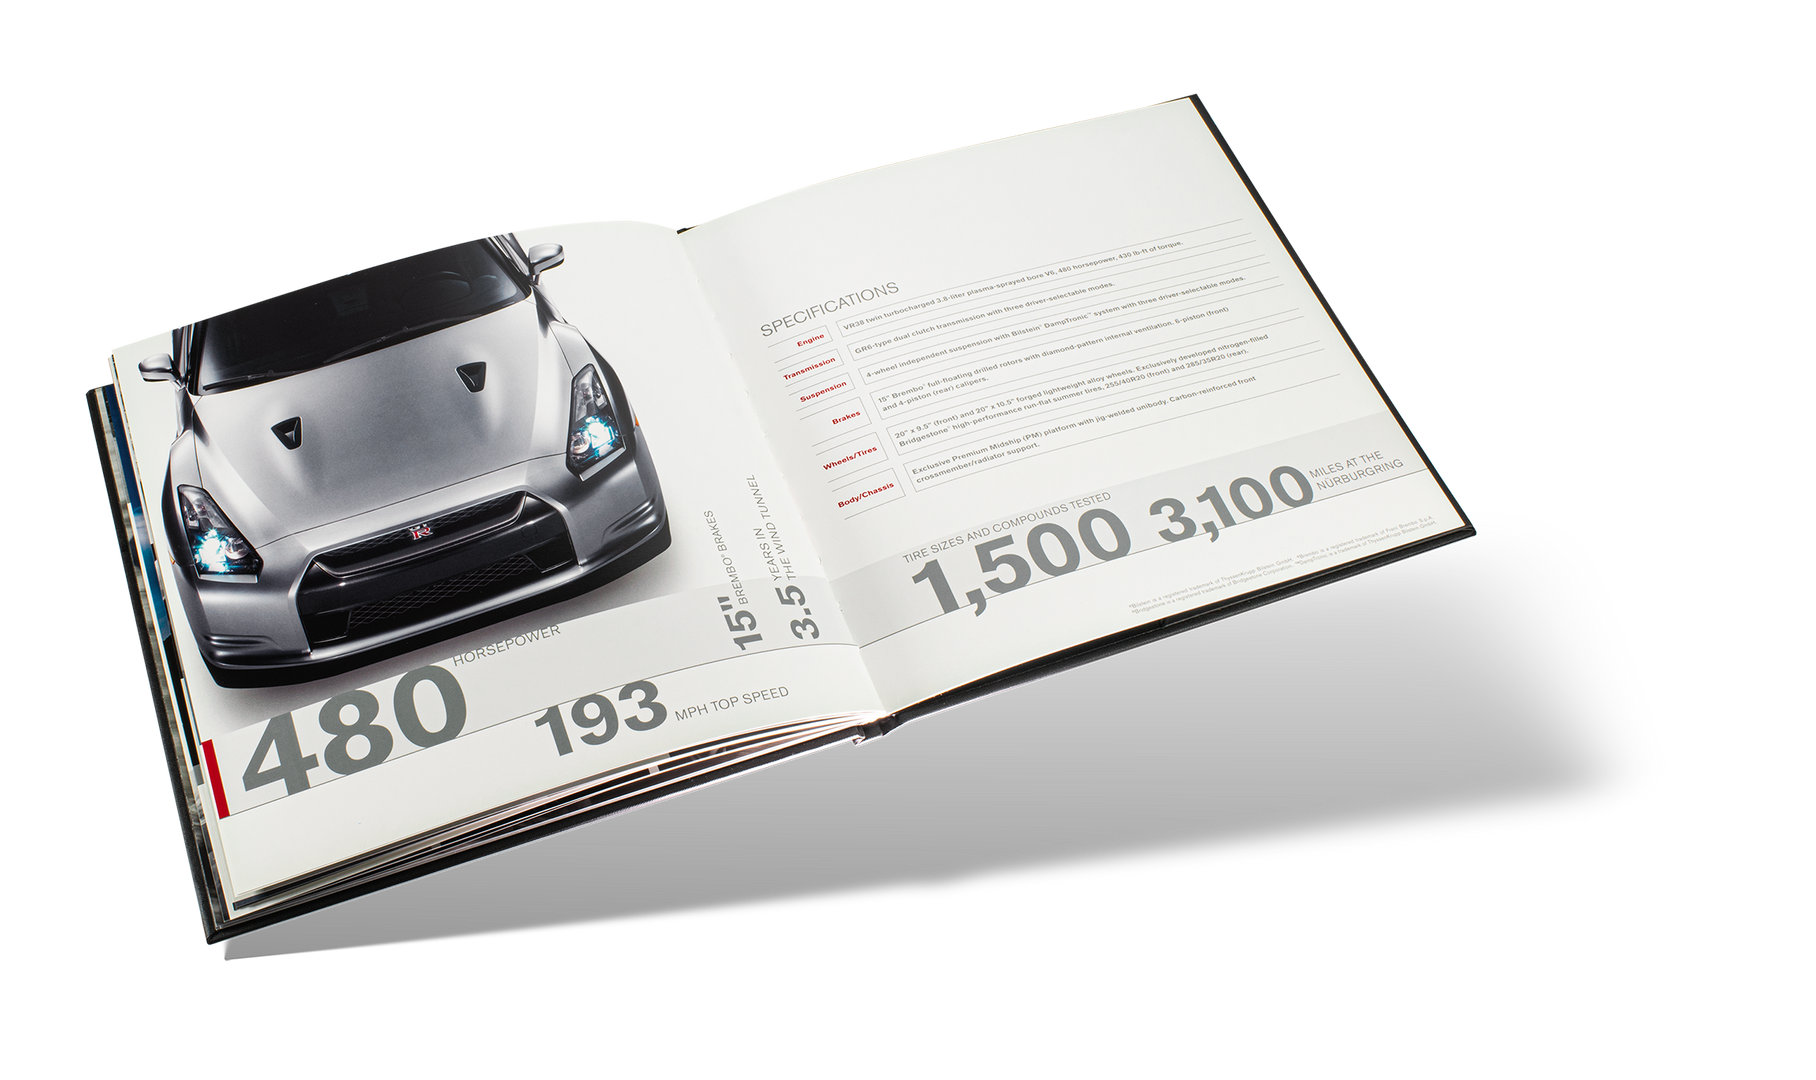 Nissan GTR Car Book Spread 19